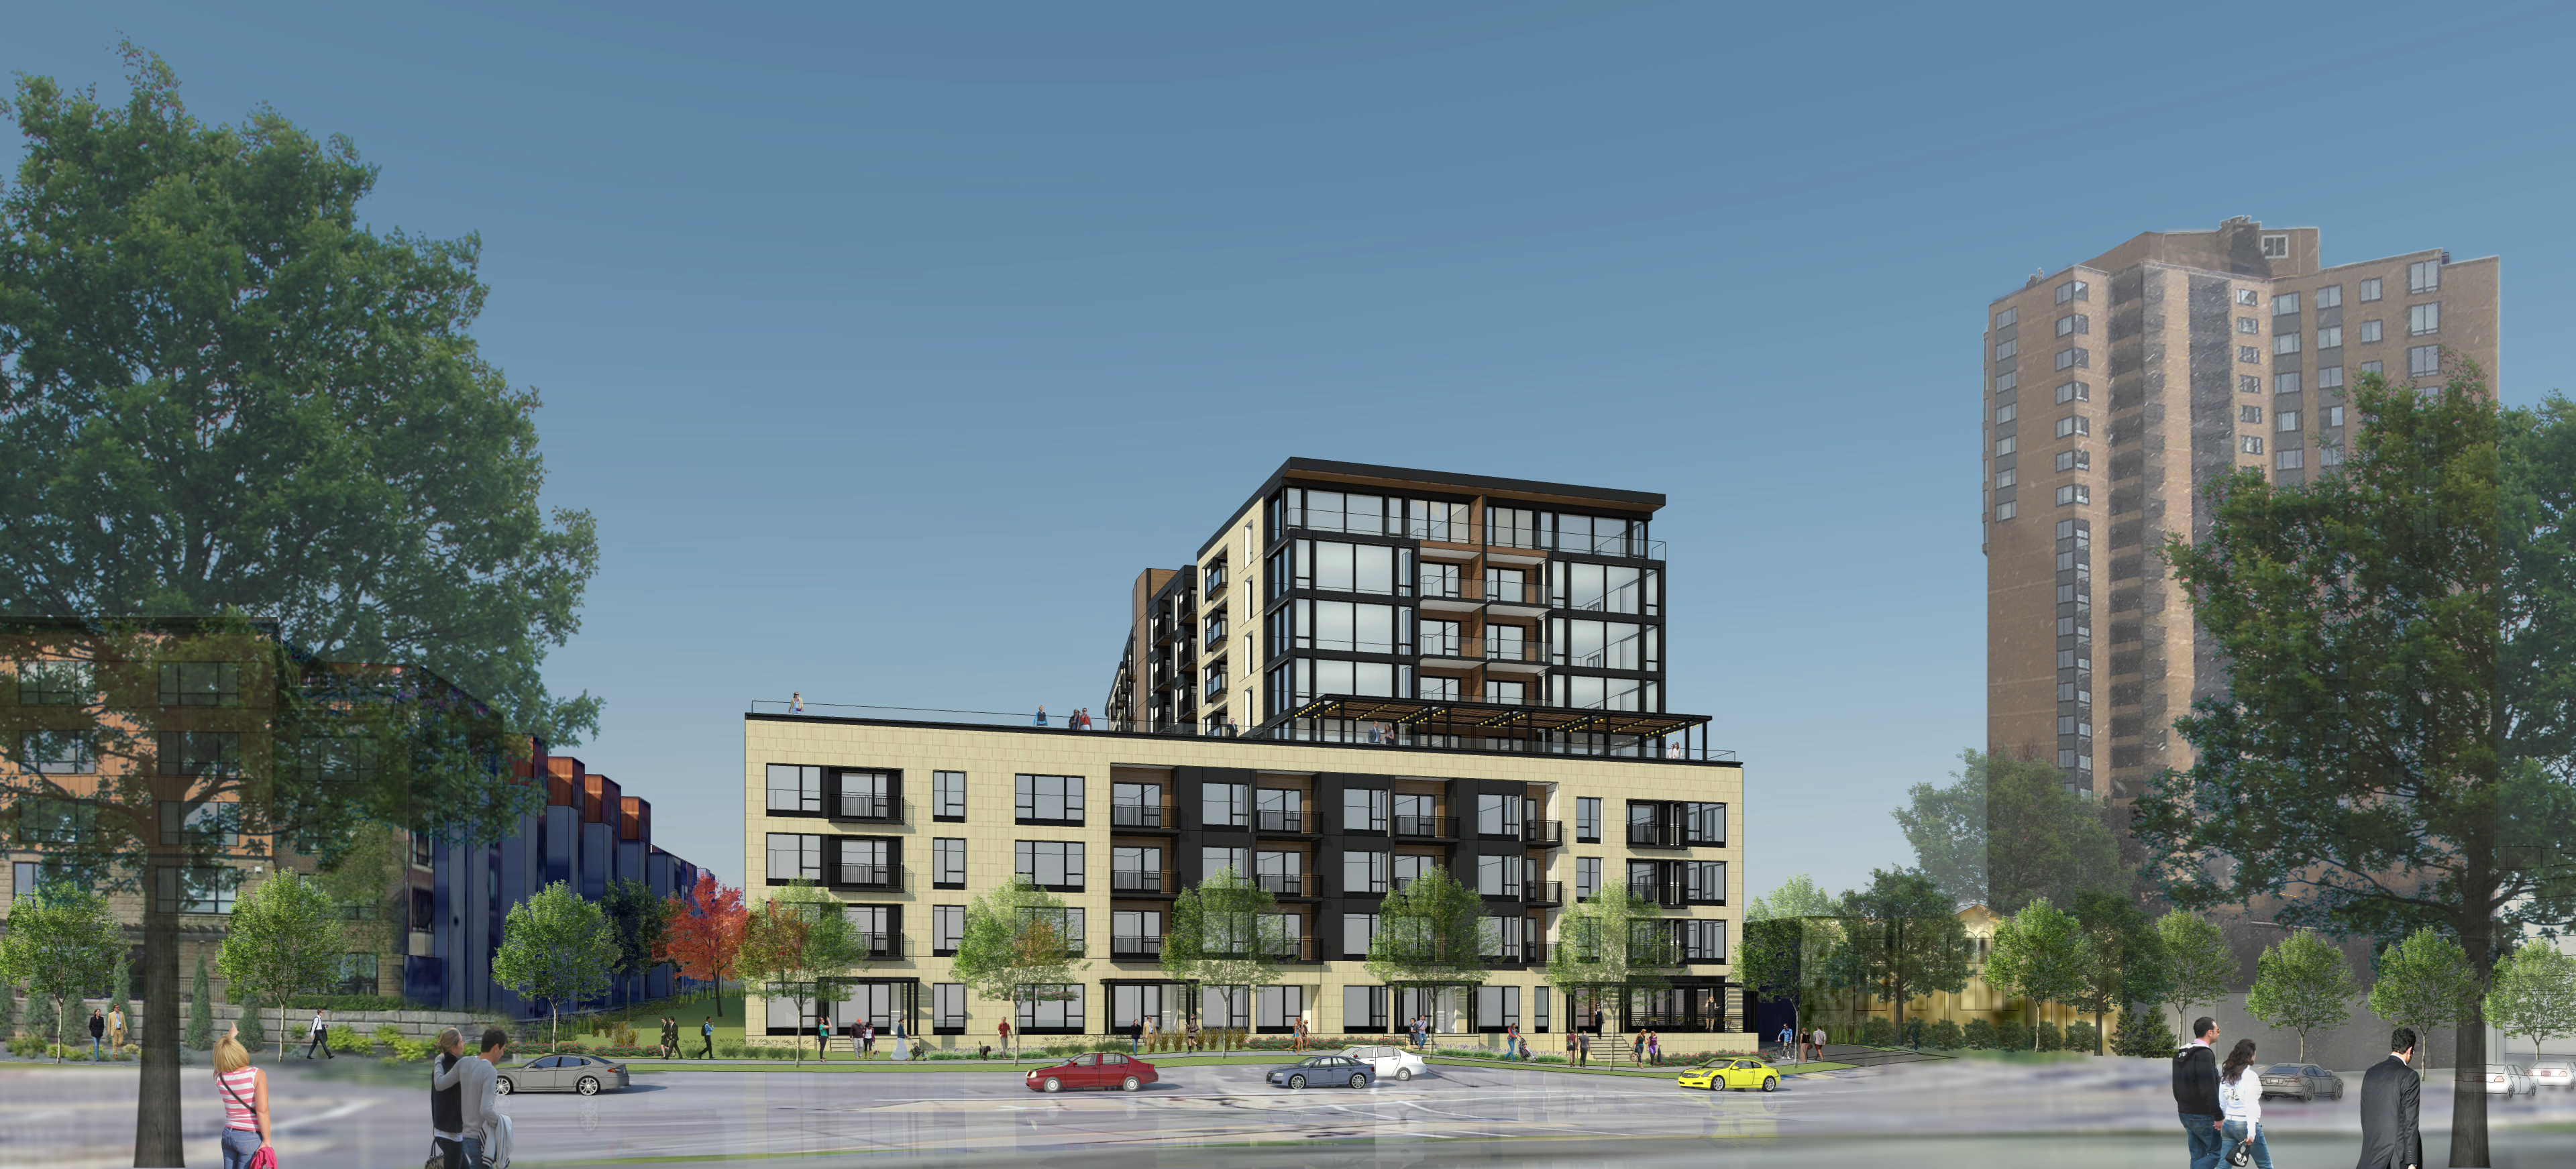 Brickstone Partners 3100 Lake Street proposed 9-story scheme (Photo: Business Wire)